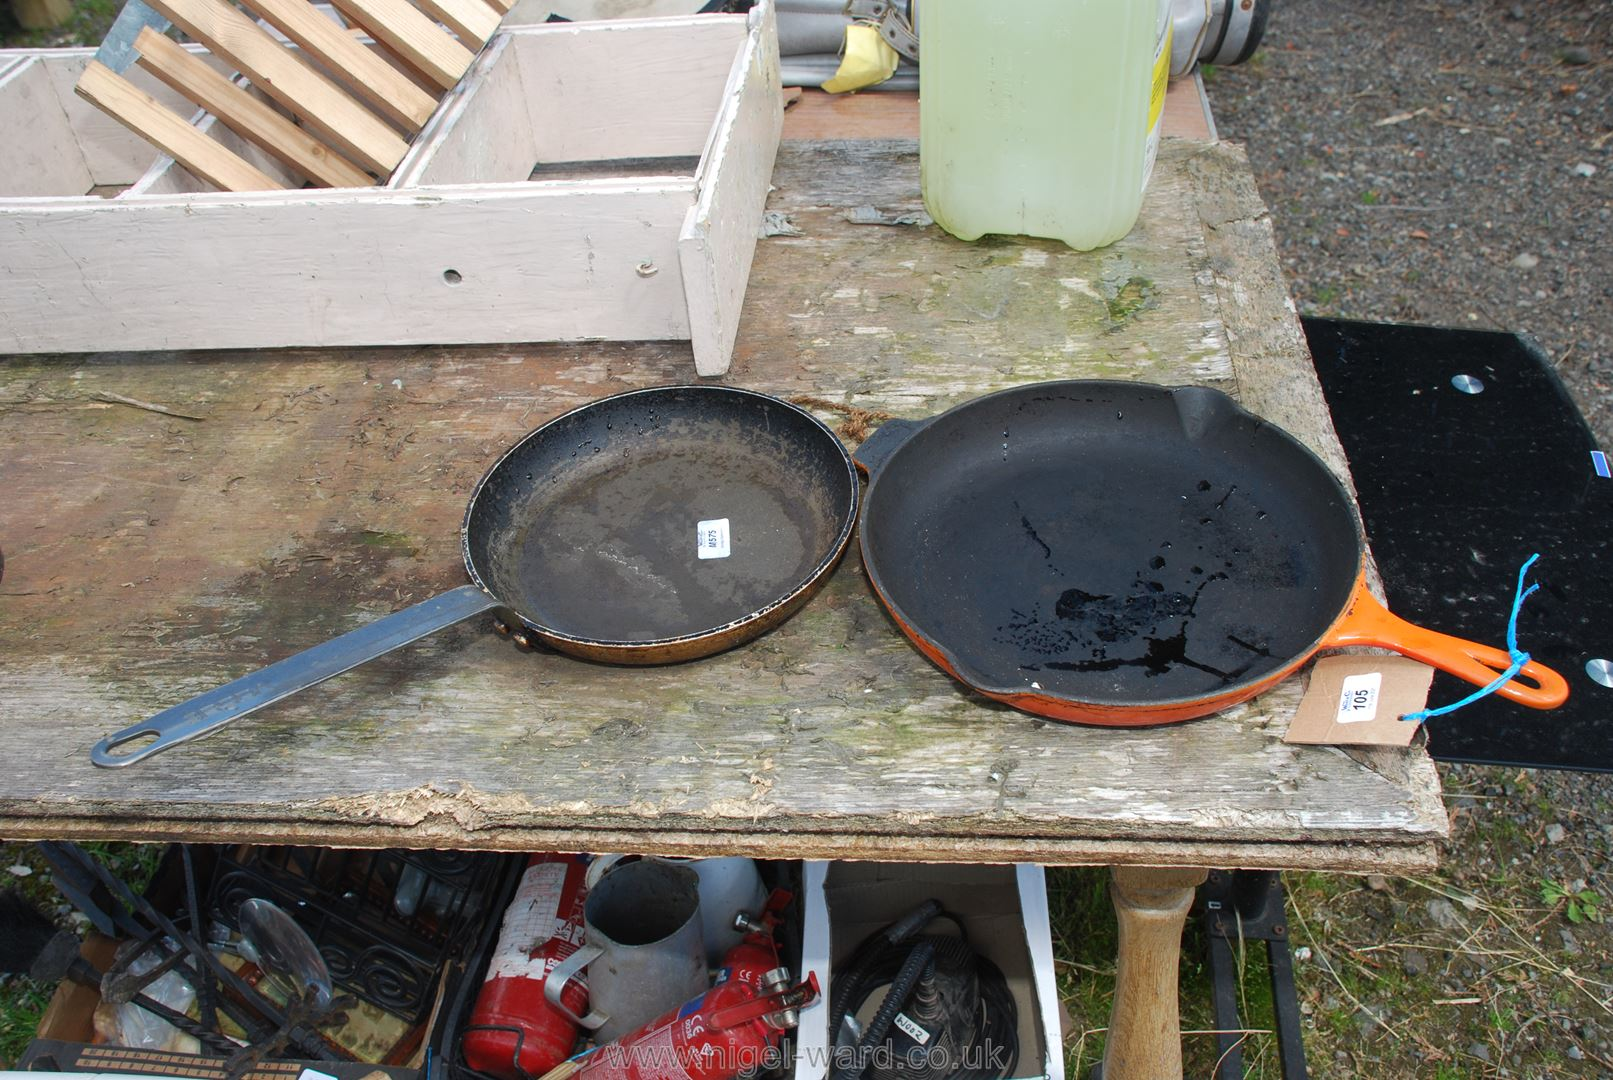 A Le Creuset frying pan and another.